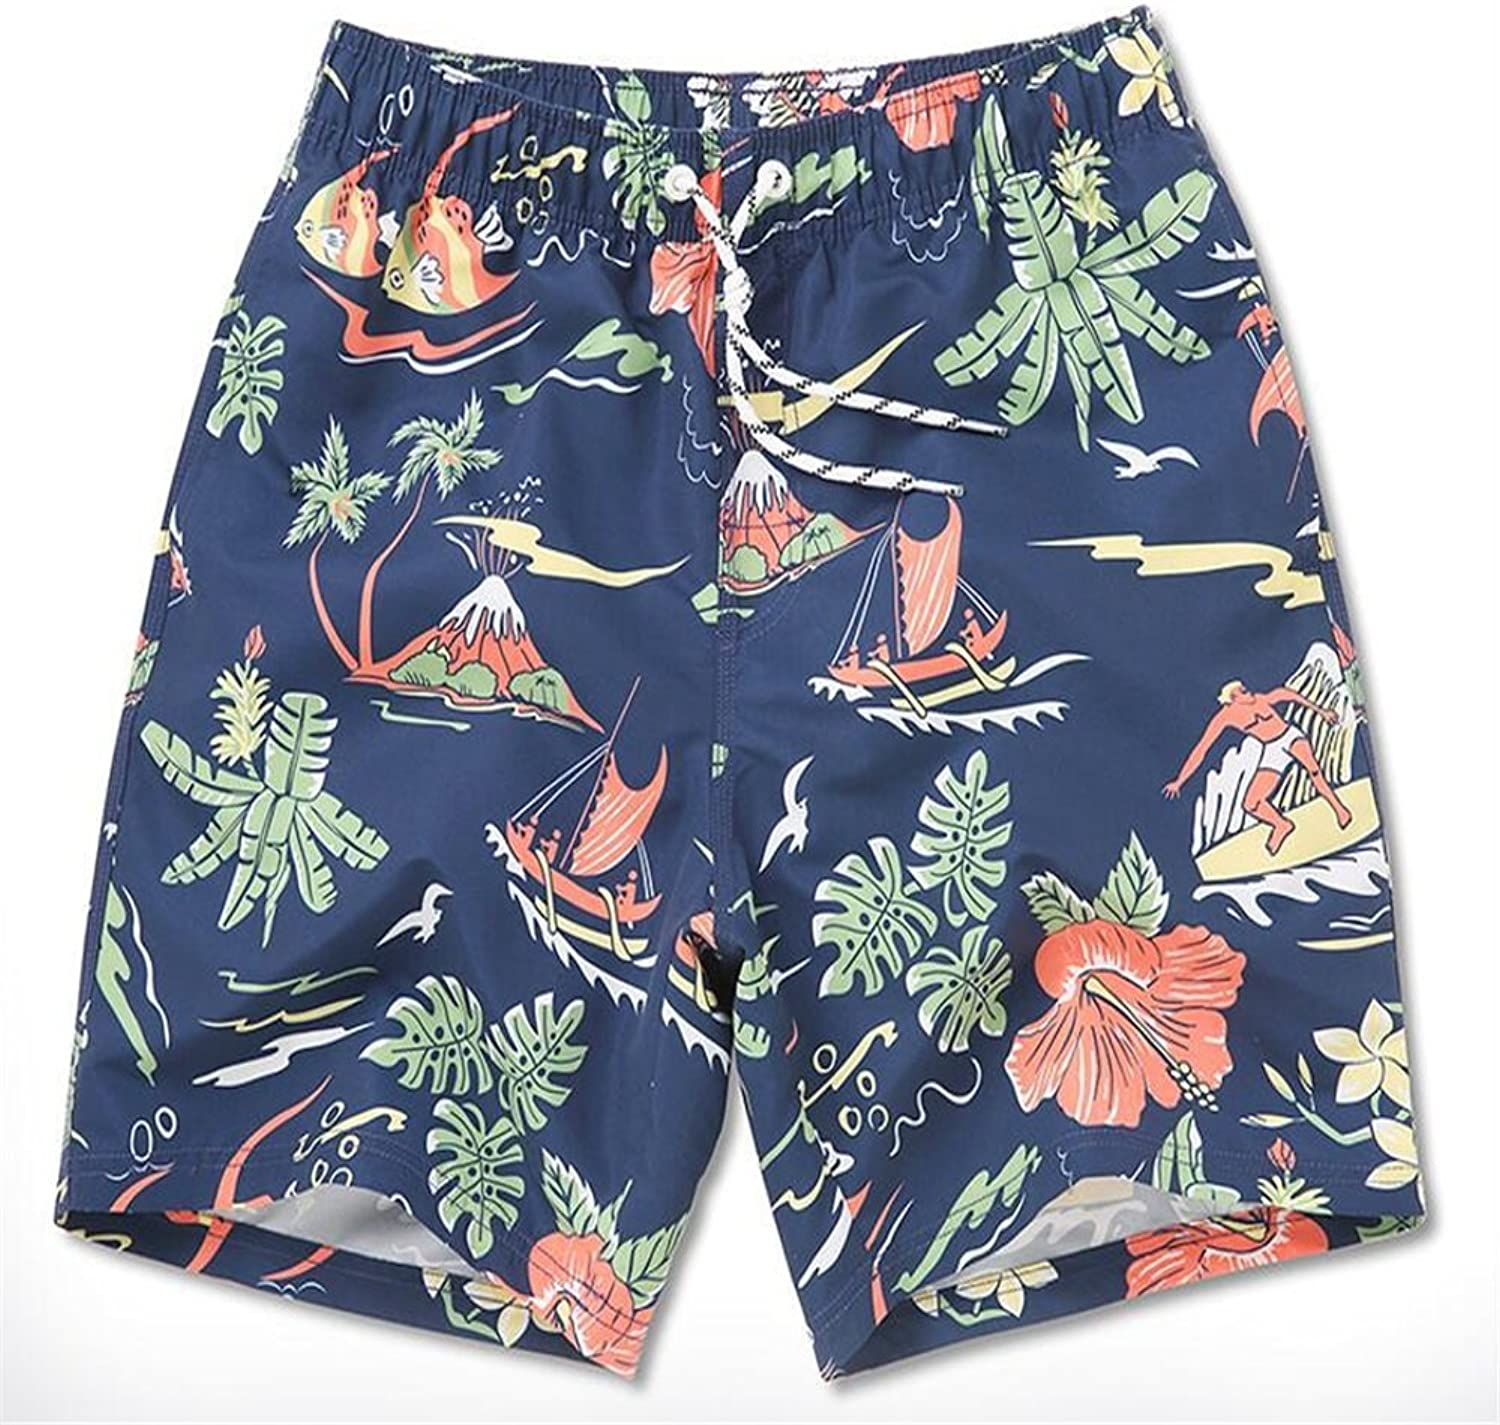 4915a9763f Men's Swim Trunks Board Shorts Mens Leisure Sports Lightweight Breathable  Breathable Breathable Beach Pants Quick-Drying Men's Surf Pants Summer  Seaside ...